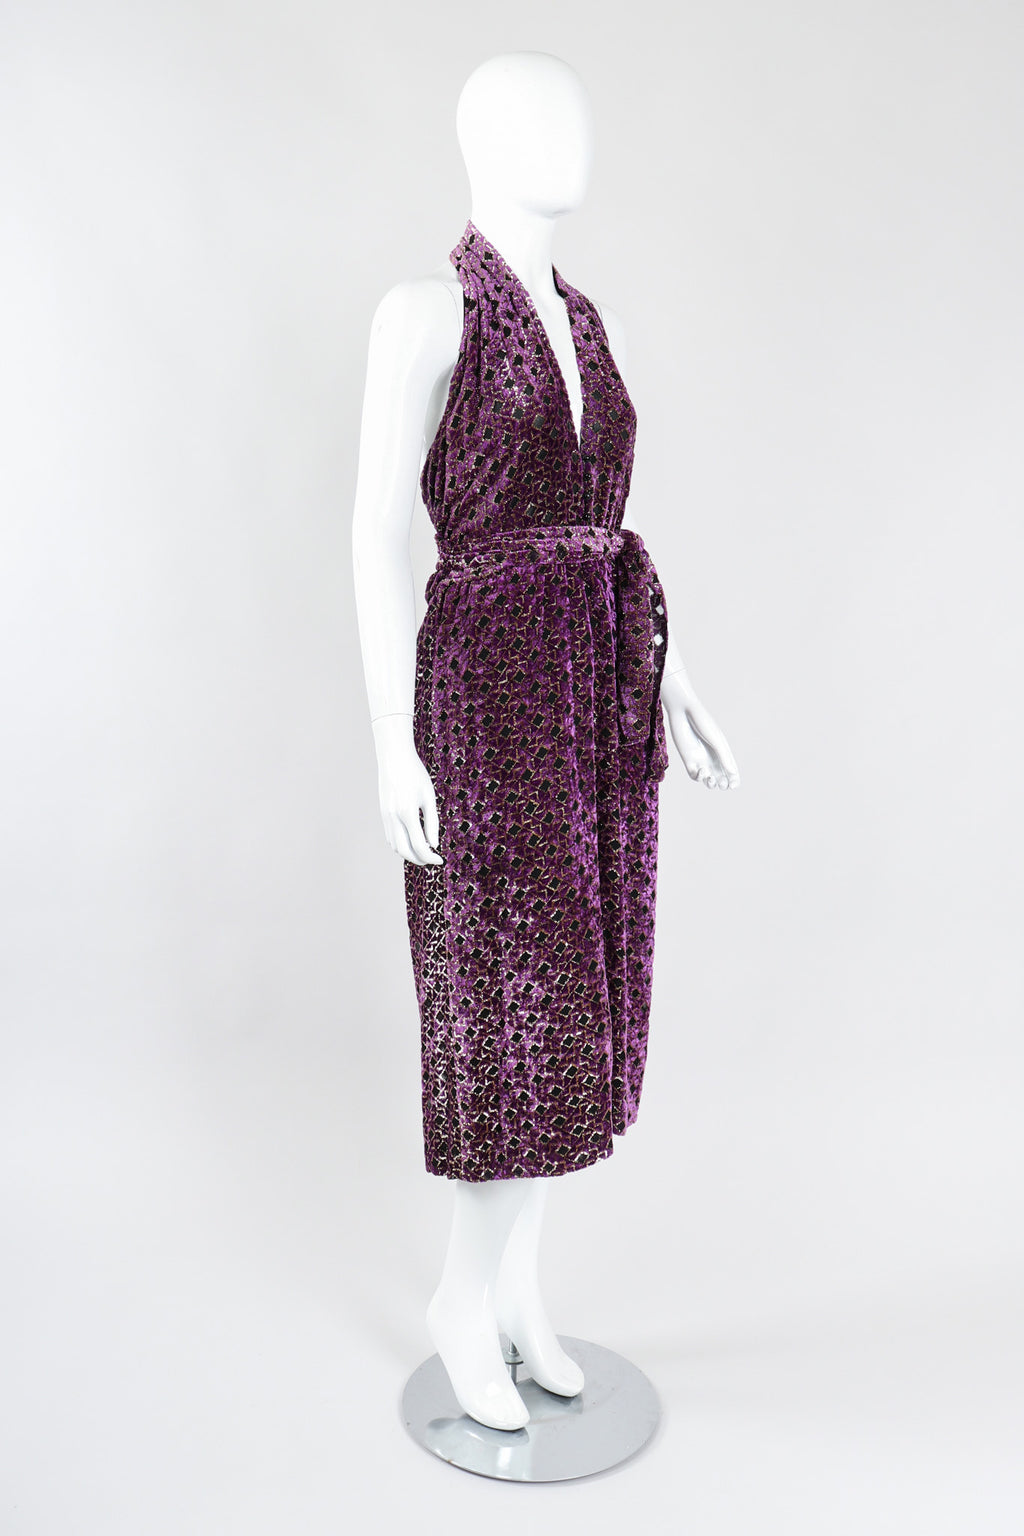 Recess Los Angeles Vintage The Silk Farm Velvet Lamé Burnout Lattice Halter Moroccan Tile Dress